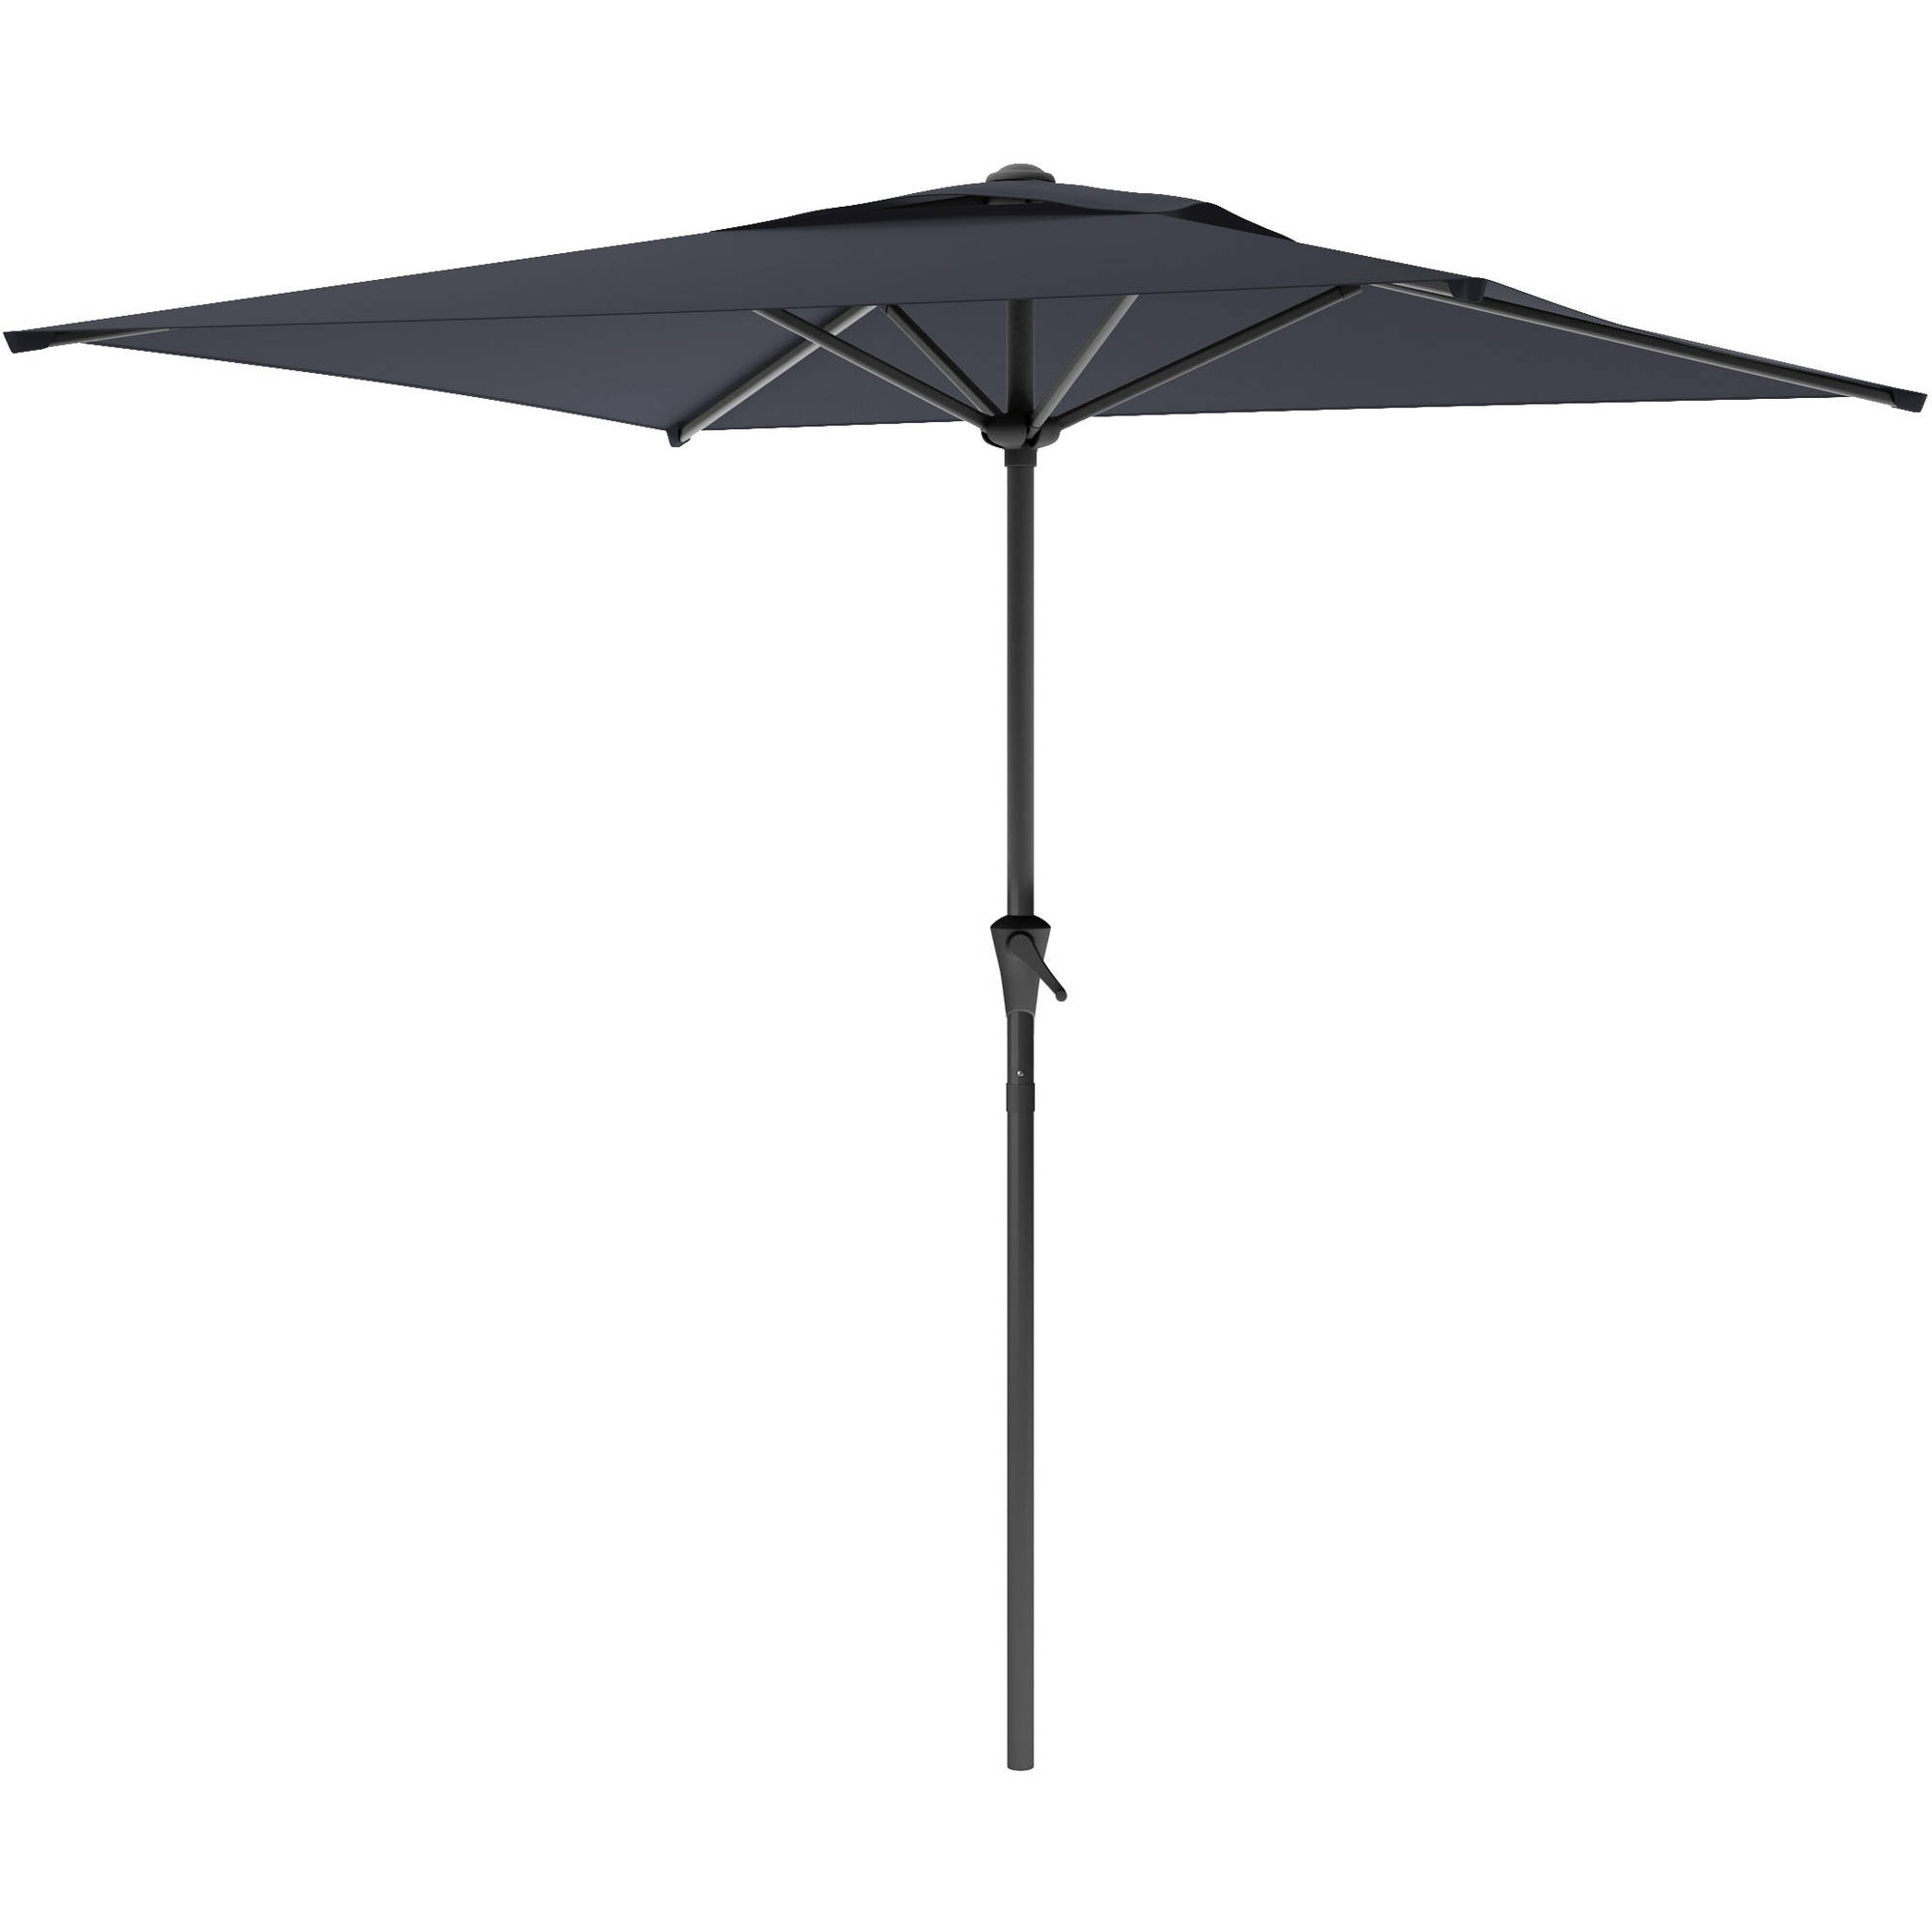 Favorite Sonax Corliving Square Patio Umbrella Metal Umbrellas In Black (View 18 of 20)